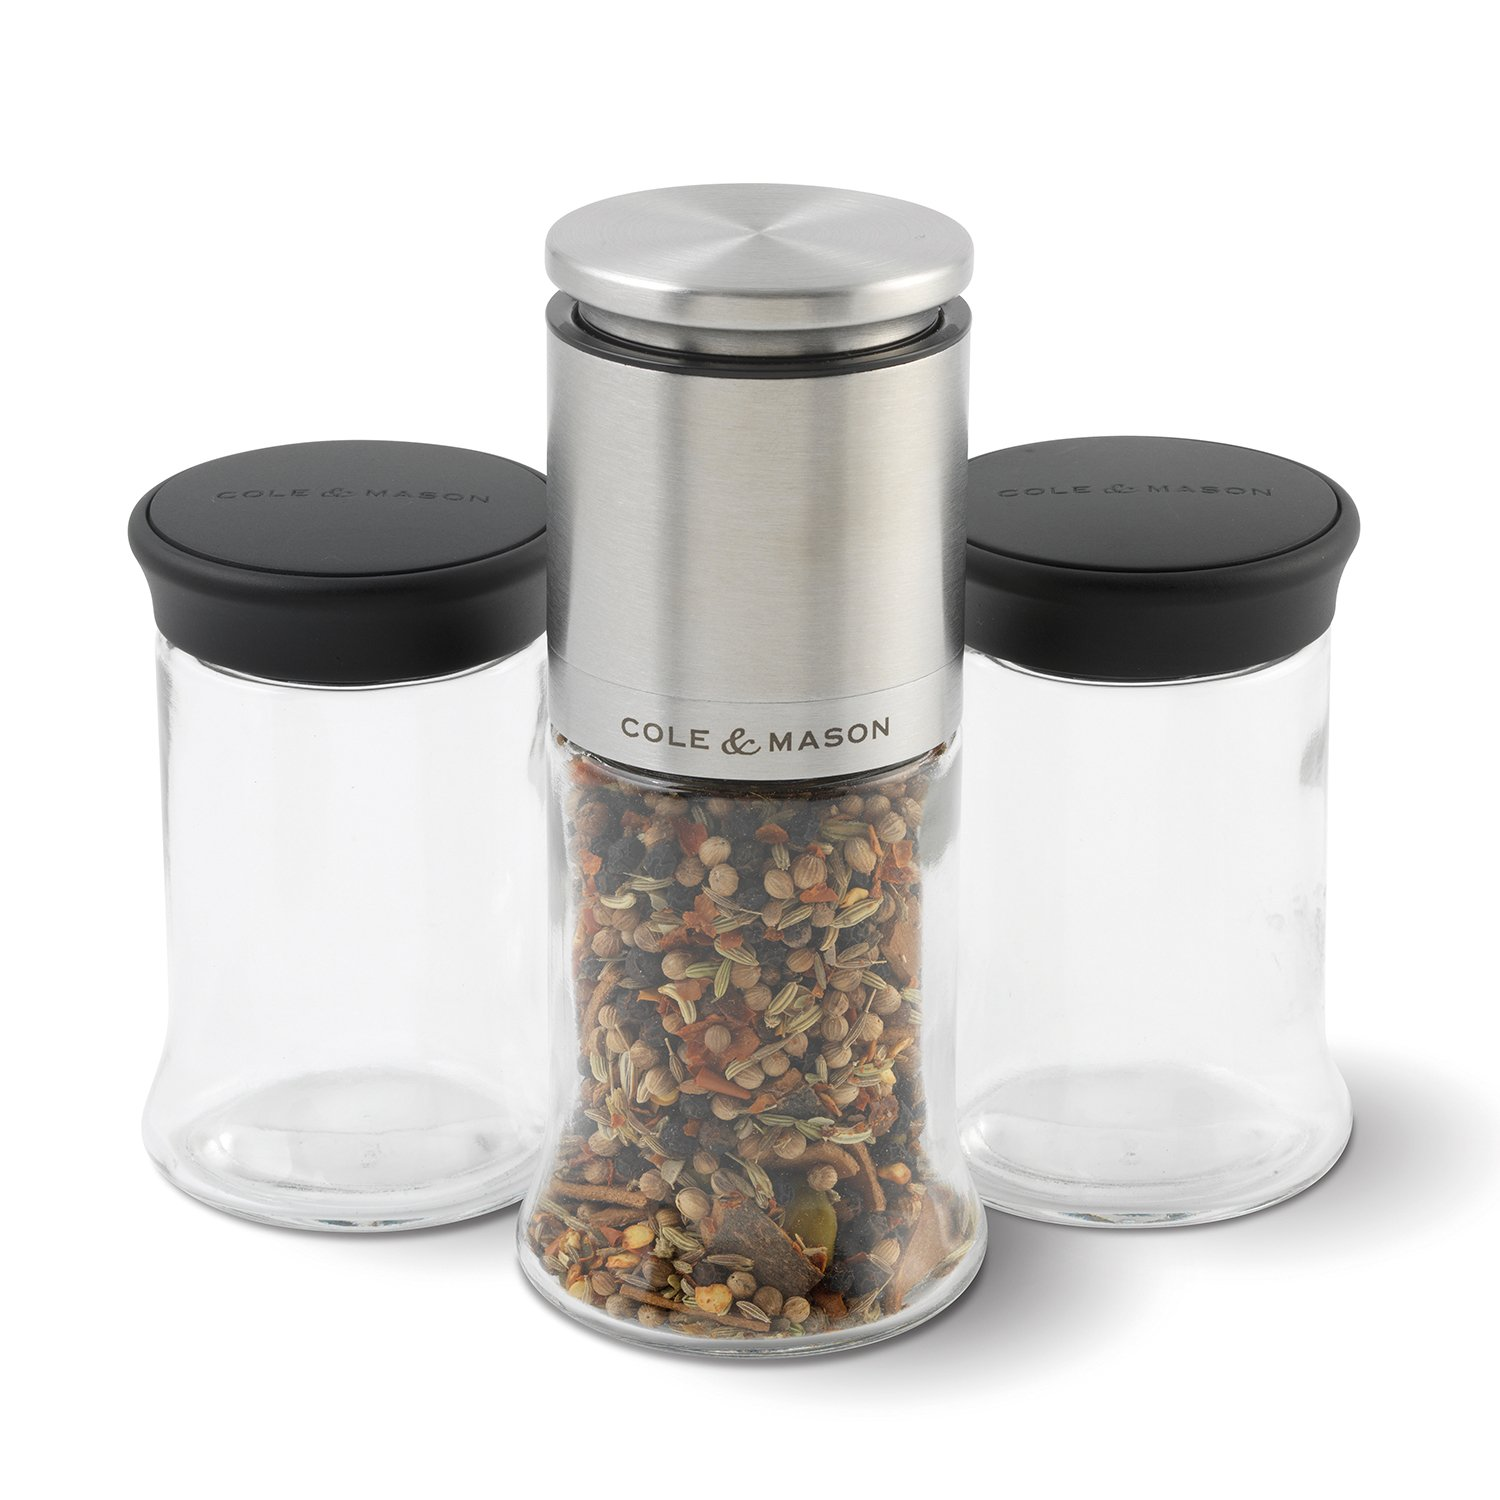 COLE & MASON Kingsley Herb and Spice Mill Gift Set, Clear by Cole & Mason